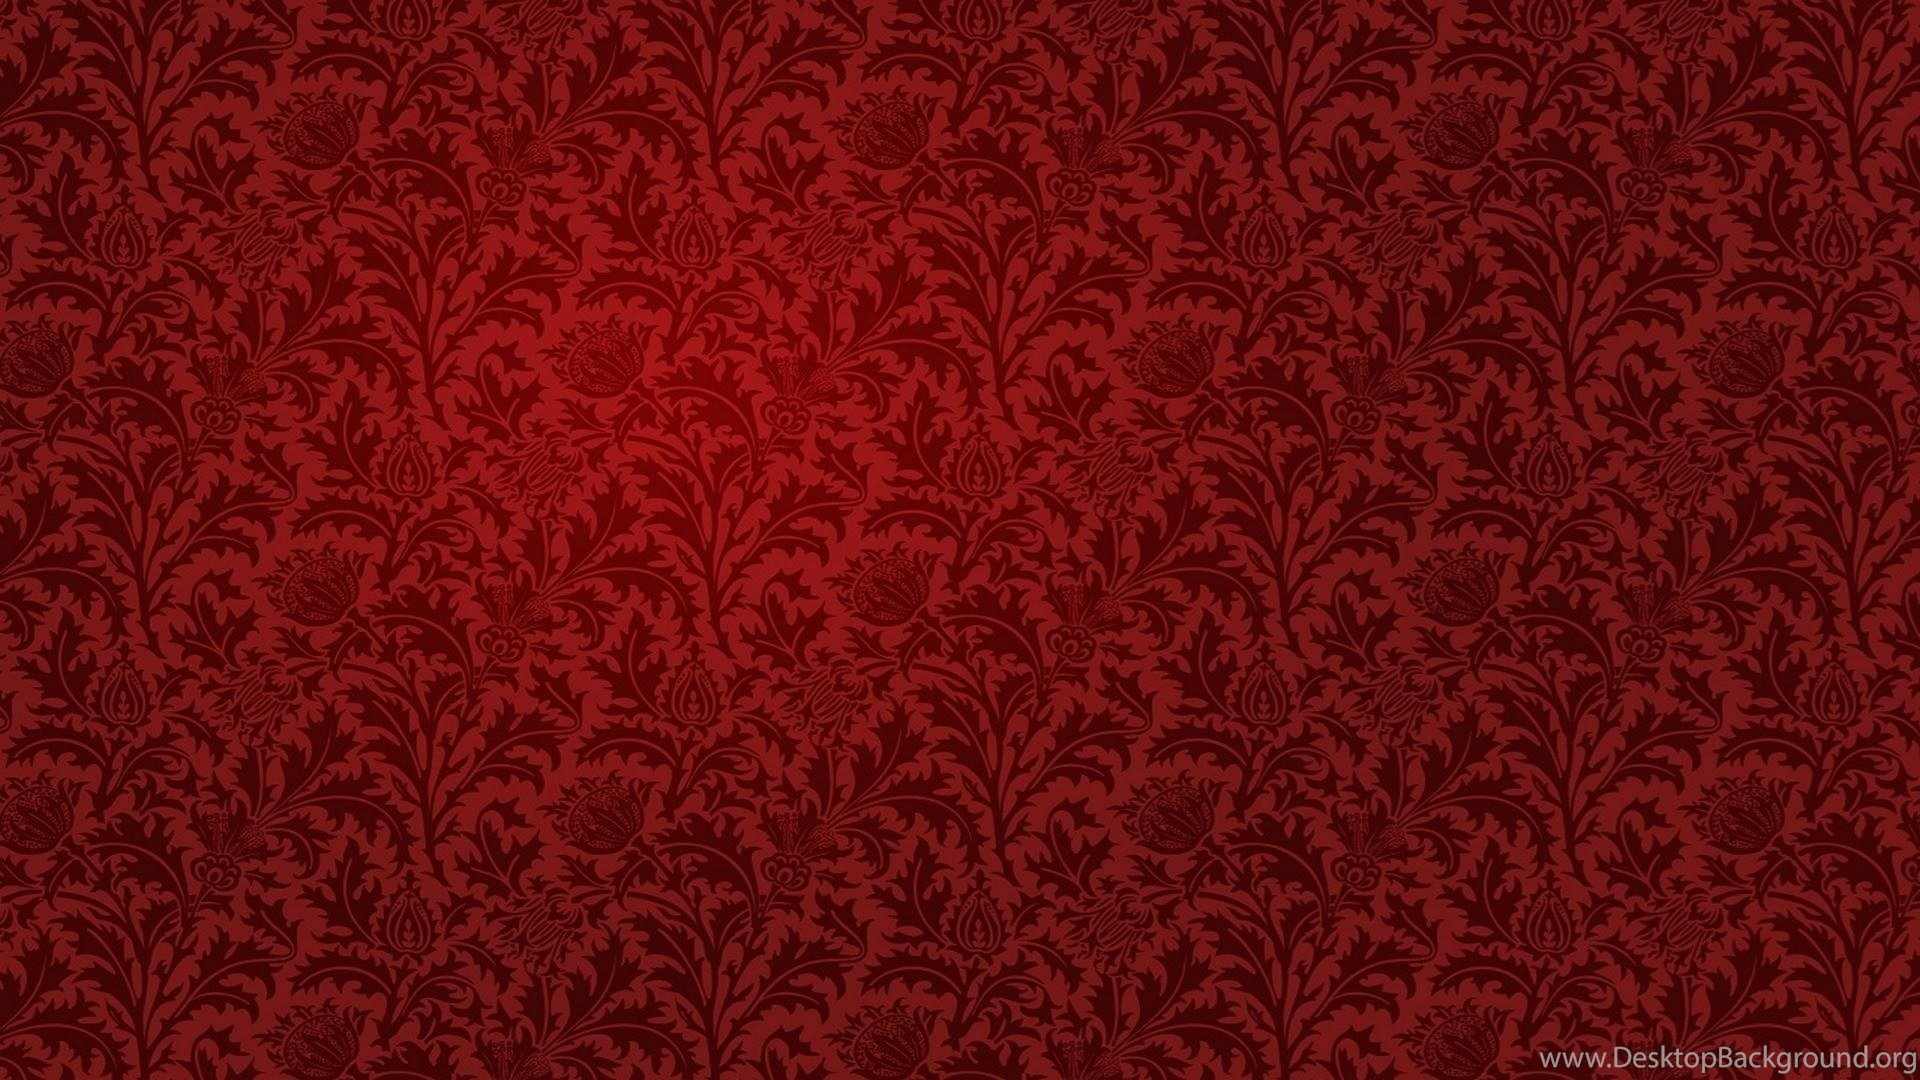 15 Red Floral Wallpapers Desktop Background